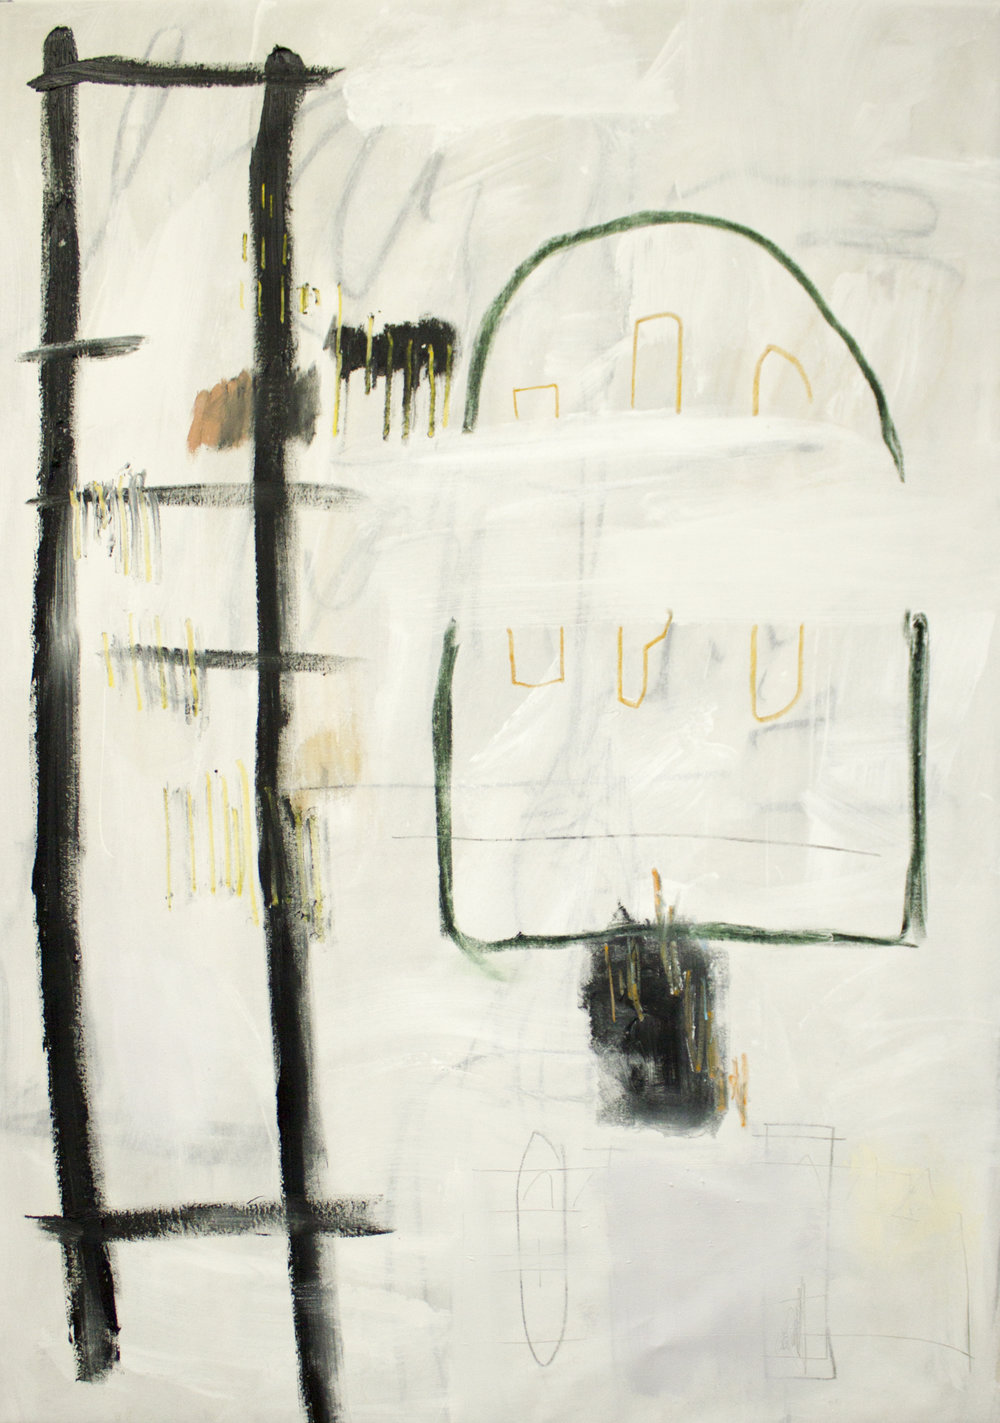 Resting(less) Spaces,  2018  60 x 44 Inches  Oil, Acrylic, Oil Stick, Colored Pencil, Pastel, Graphite and Crayon on Canvas  Private Collection